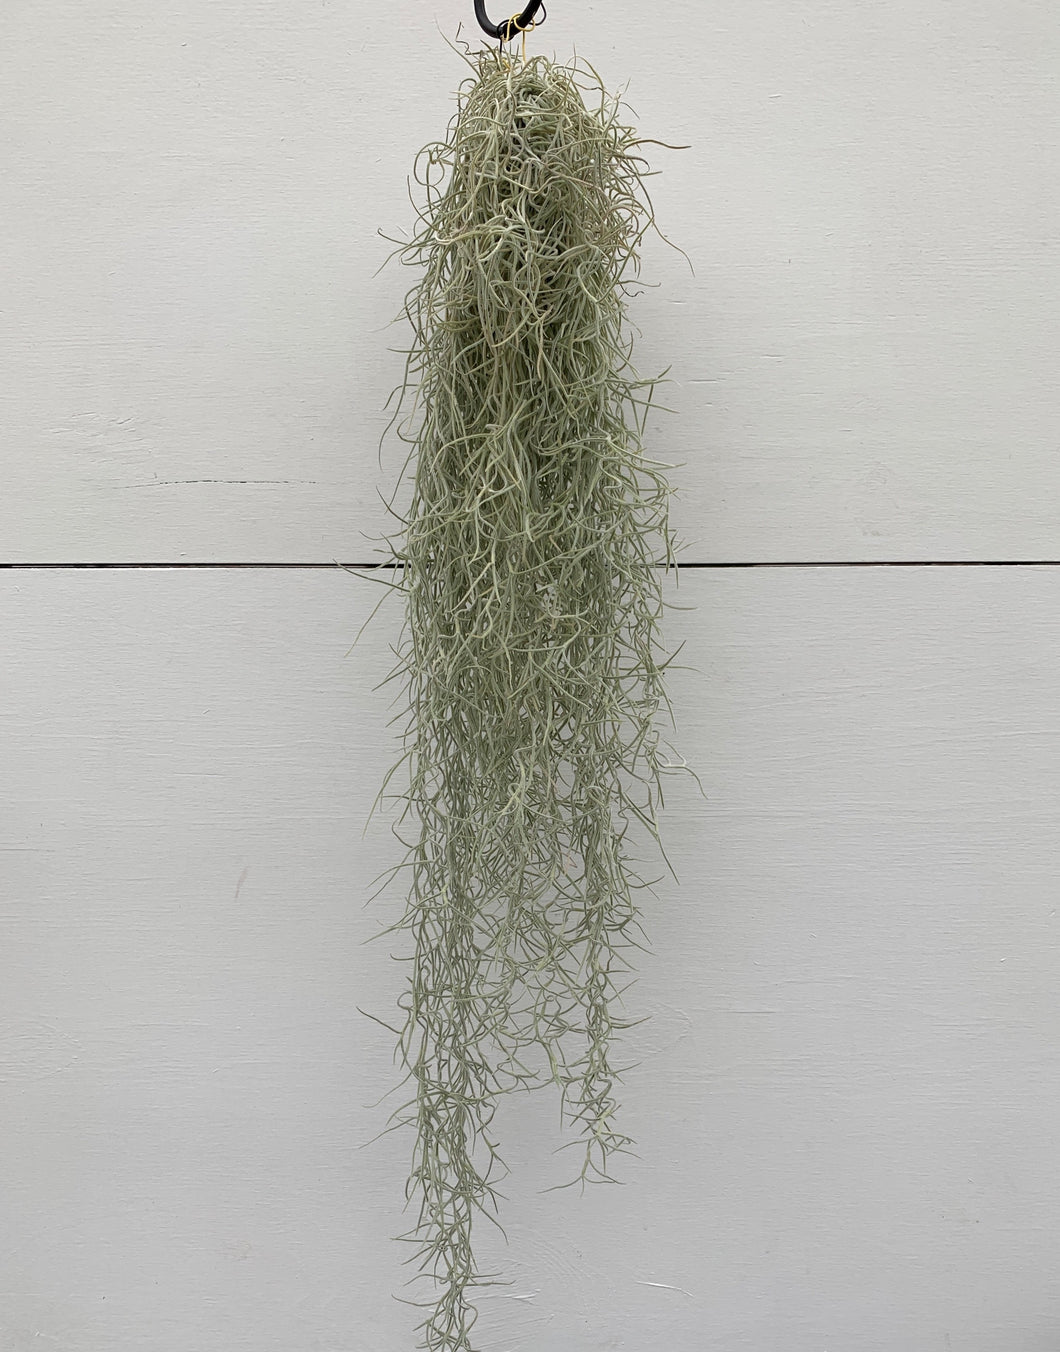 Tillandsia usnoides (AKA air plants)